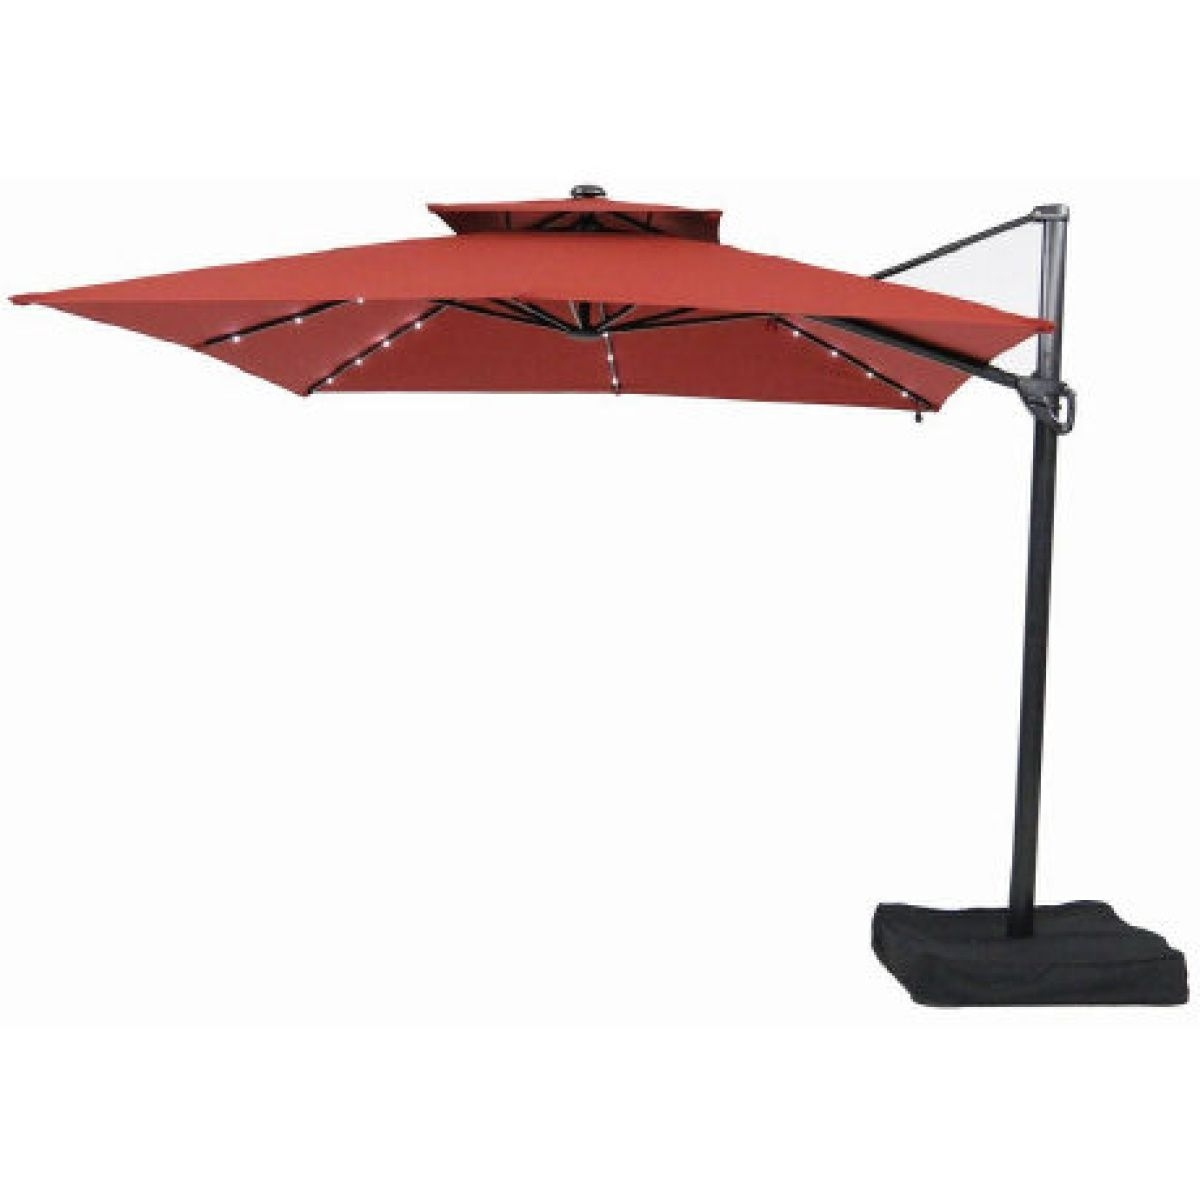 Popular Cantilever Patio Umbrellas Won't Obstruct The View (View 12 of 20)